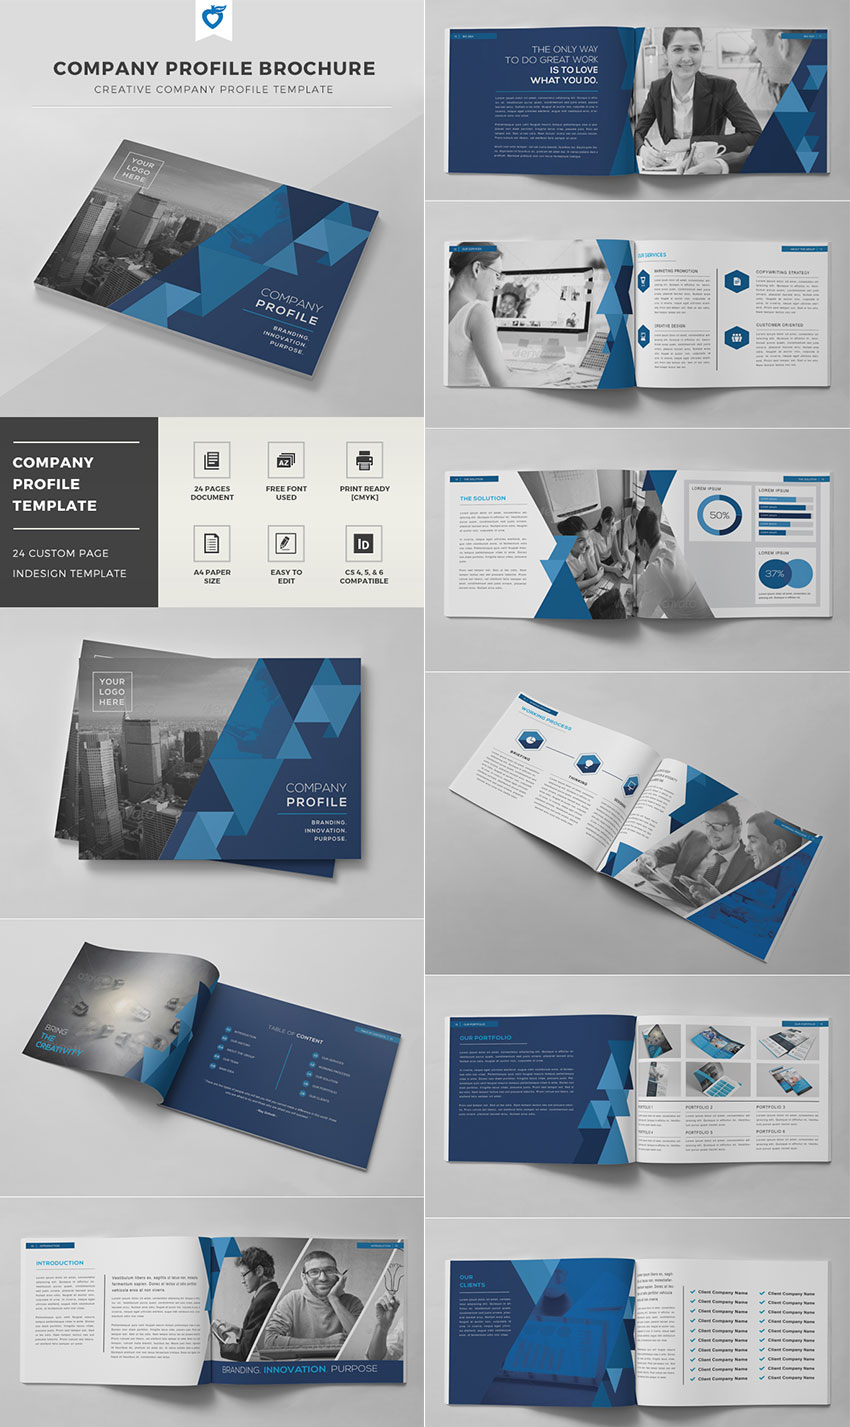 Best InDesign Brochure Templates For Creative Business Marketing - Brochure template for indesign